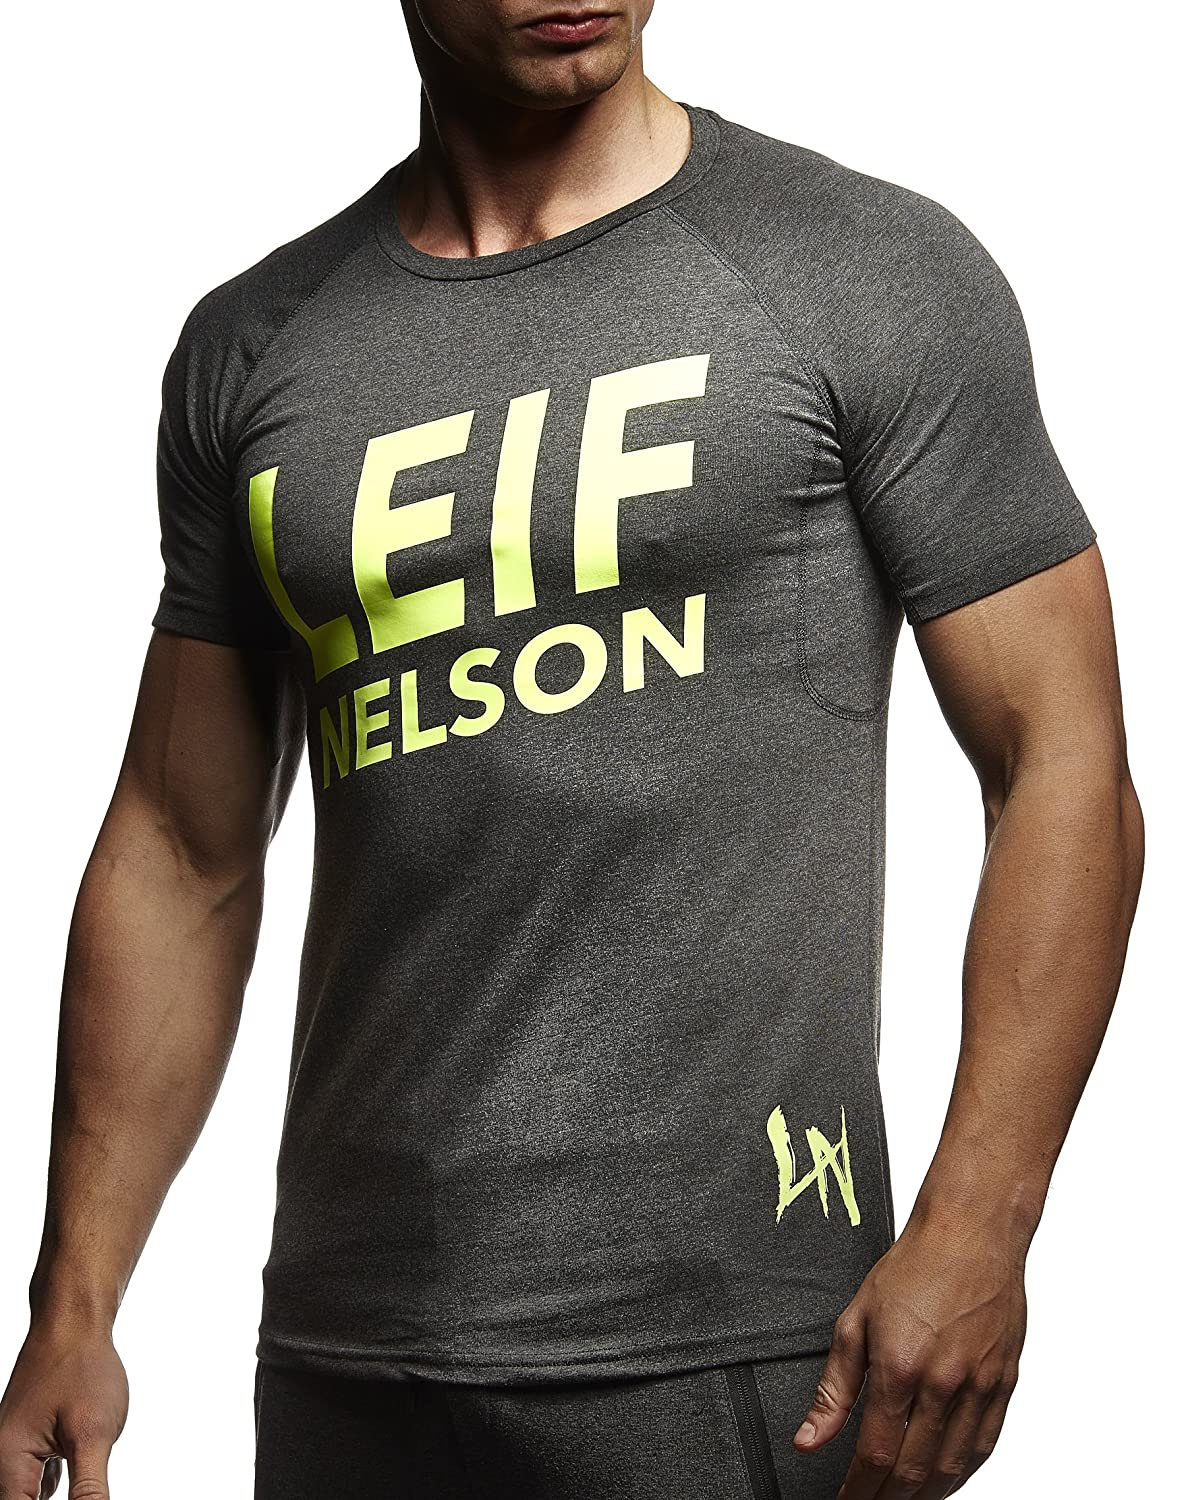 LEIF NELSON Herren T Shirt Tiefer Rundhals Kragen | Kurzarm Shirt Slim Fit | Männer Fitness Shirt | Trainings Shirt Gym